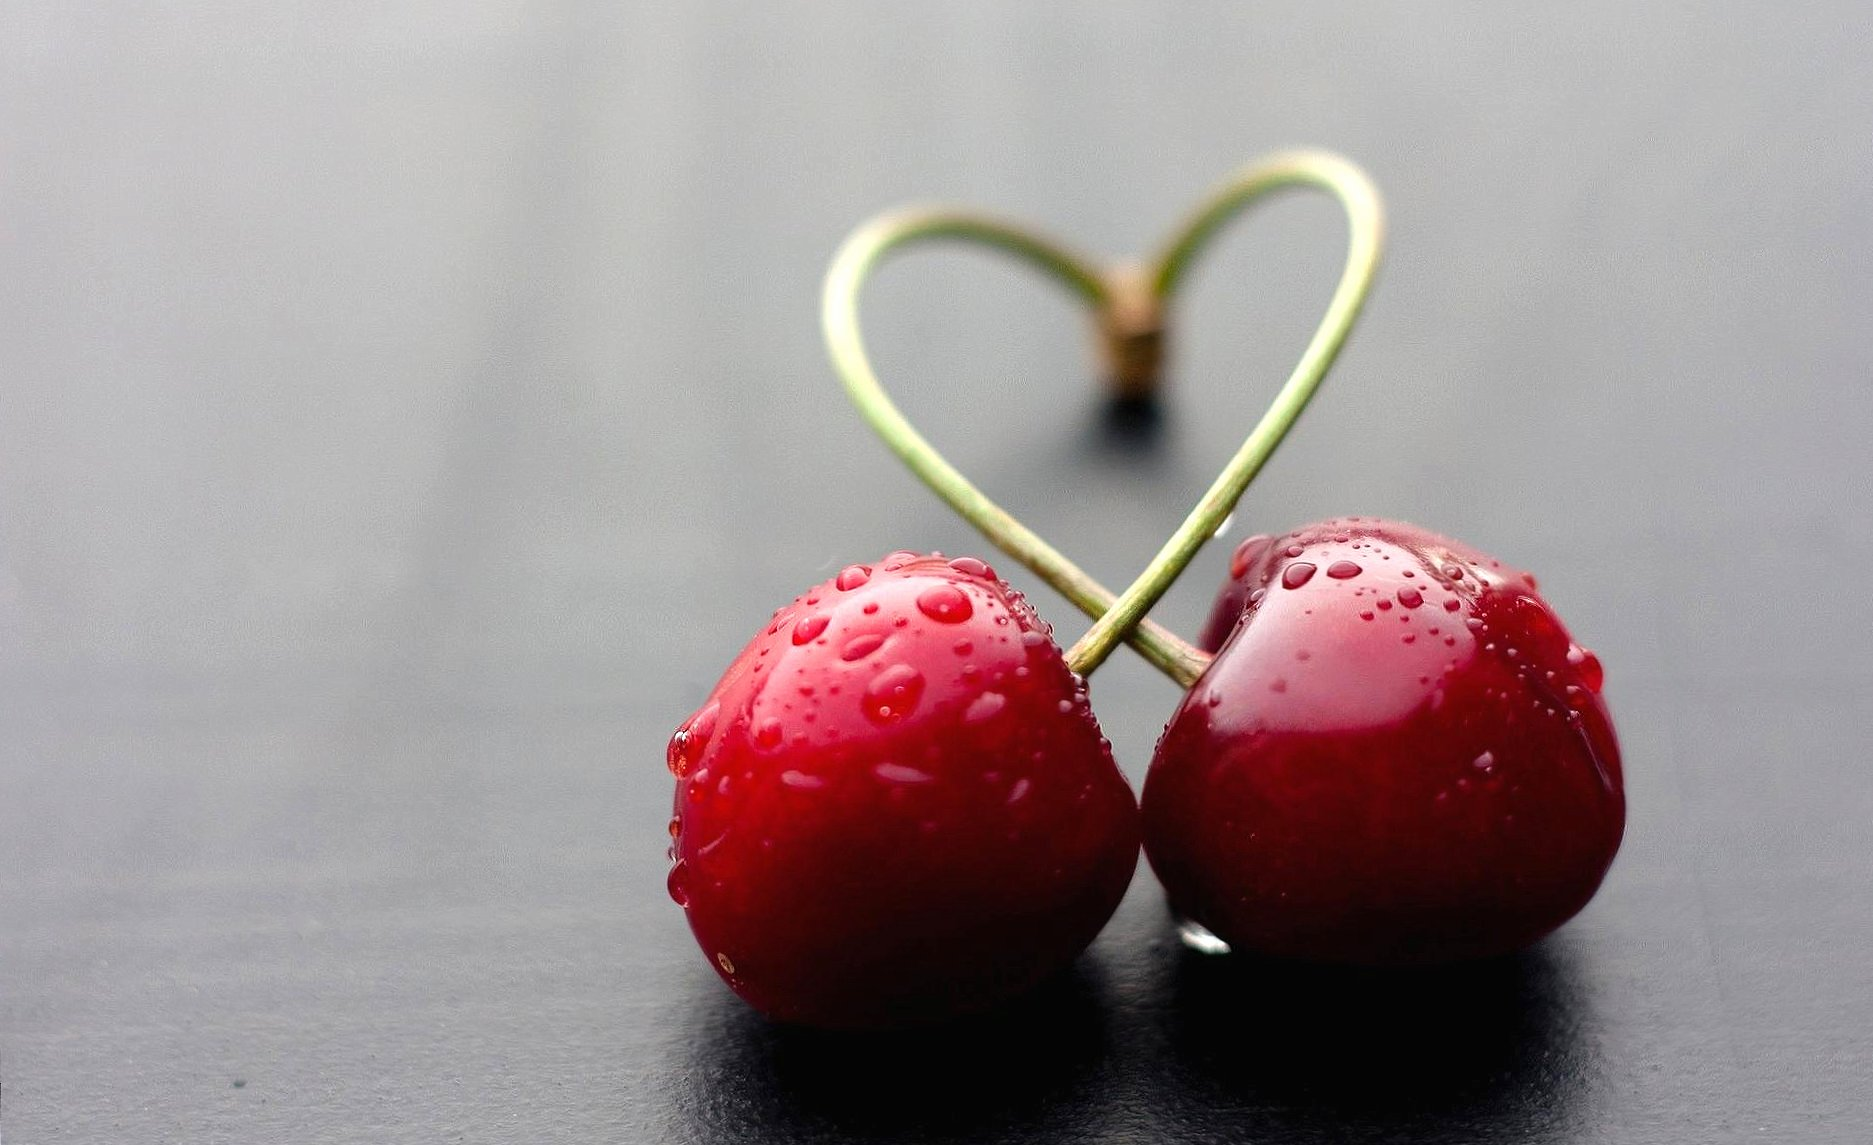 Hearth cherry cherries wallpapers HD quality